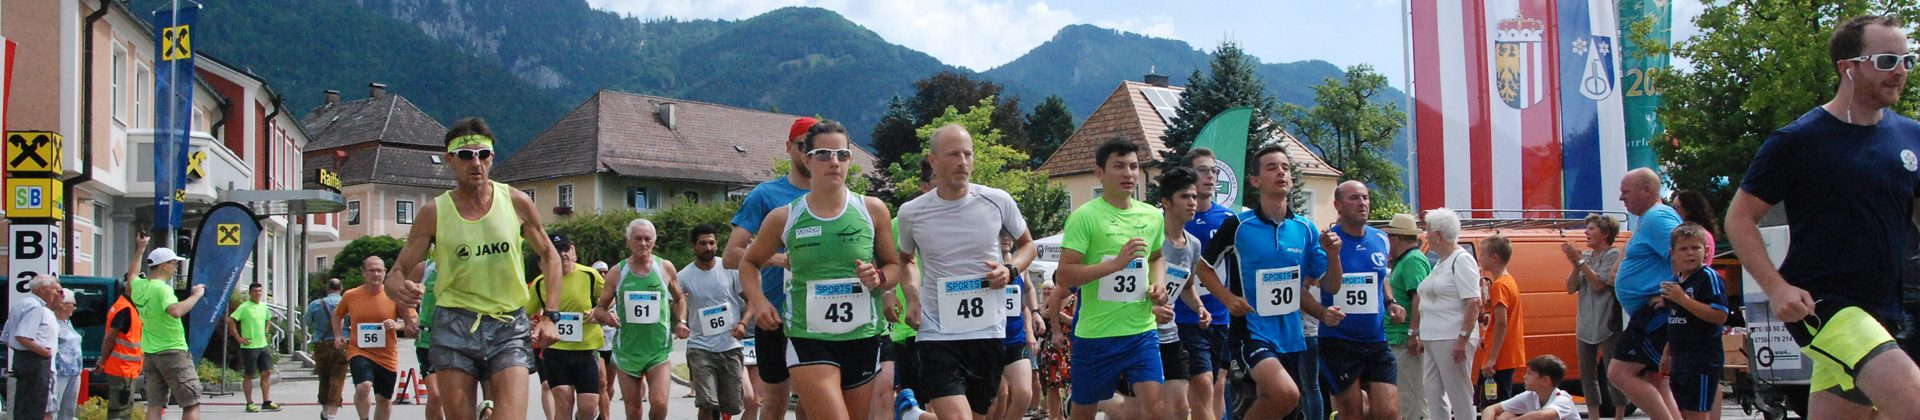 Christoph Girkinger beim Triathlon in Zell am See